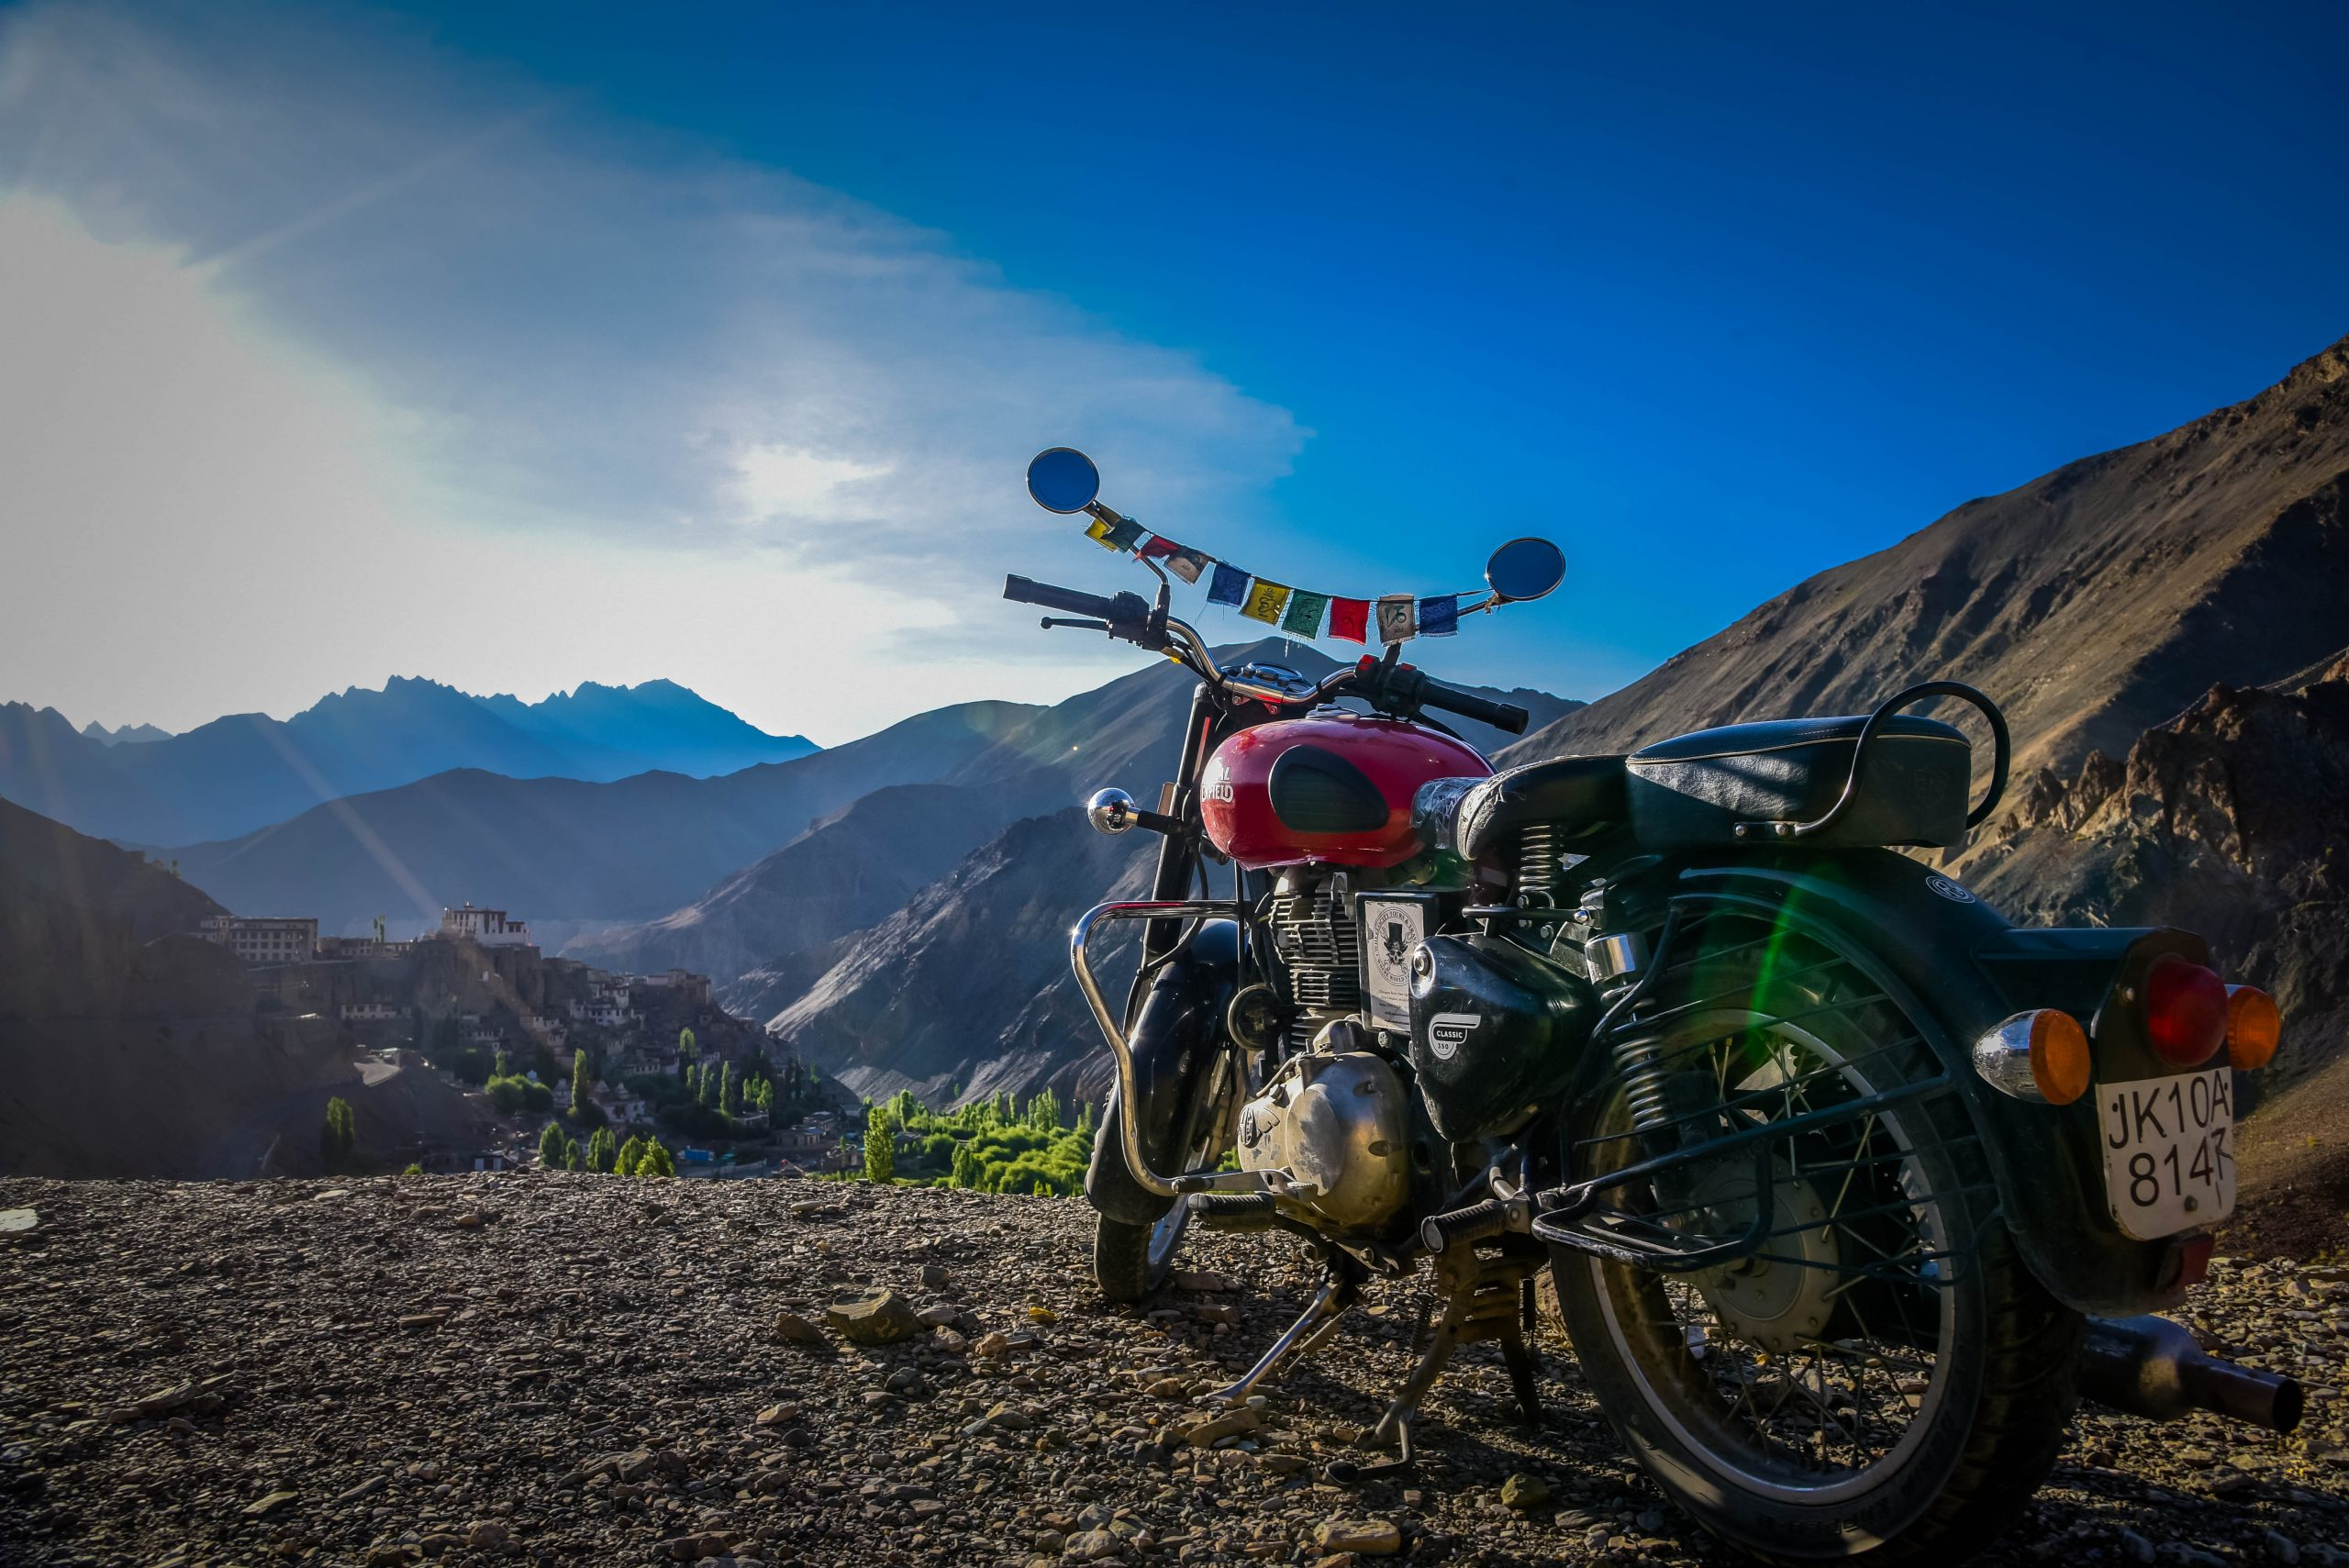 Travel Bike in the Mountains